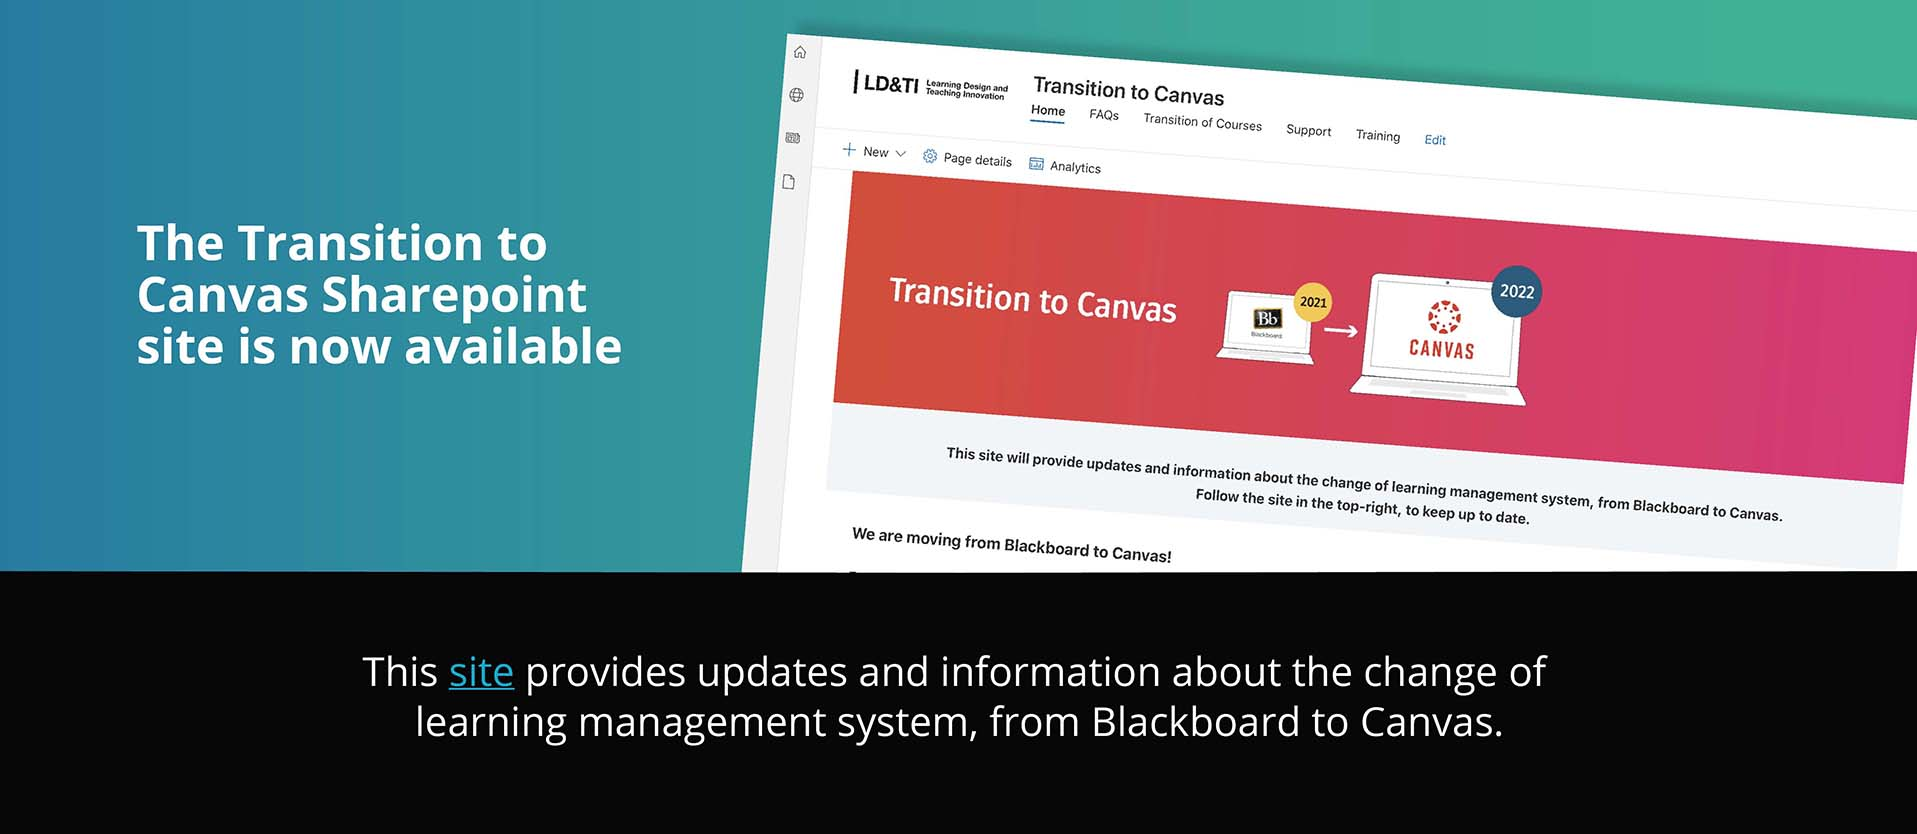 Transition to Canvas - Sharepoint site